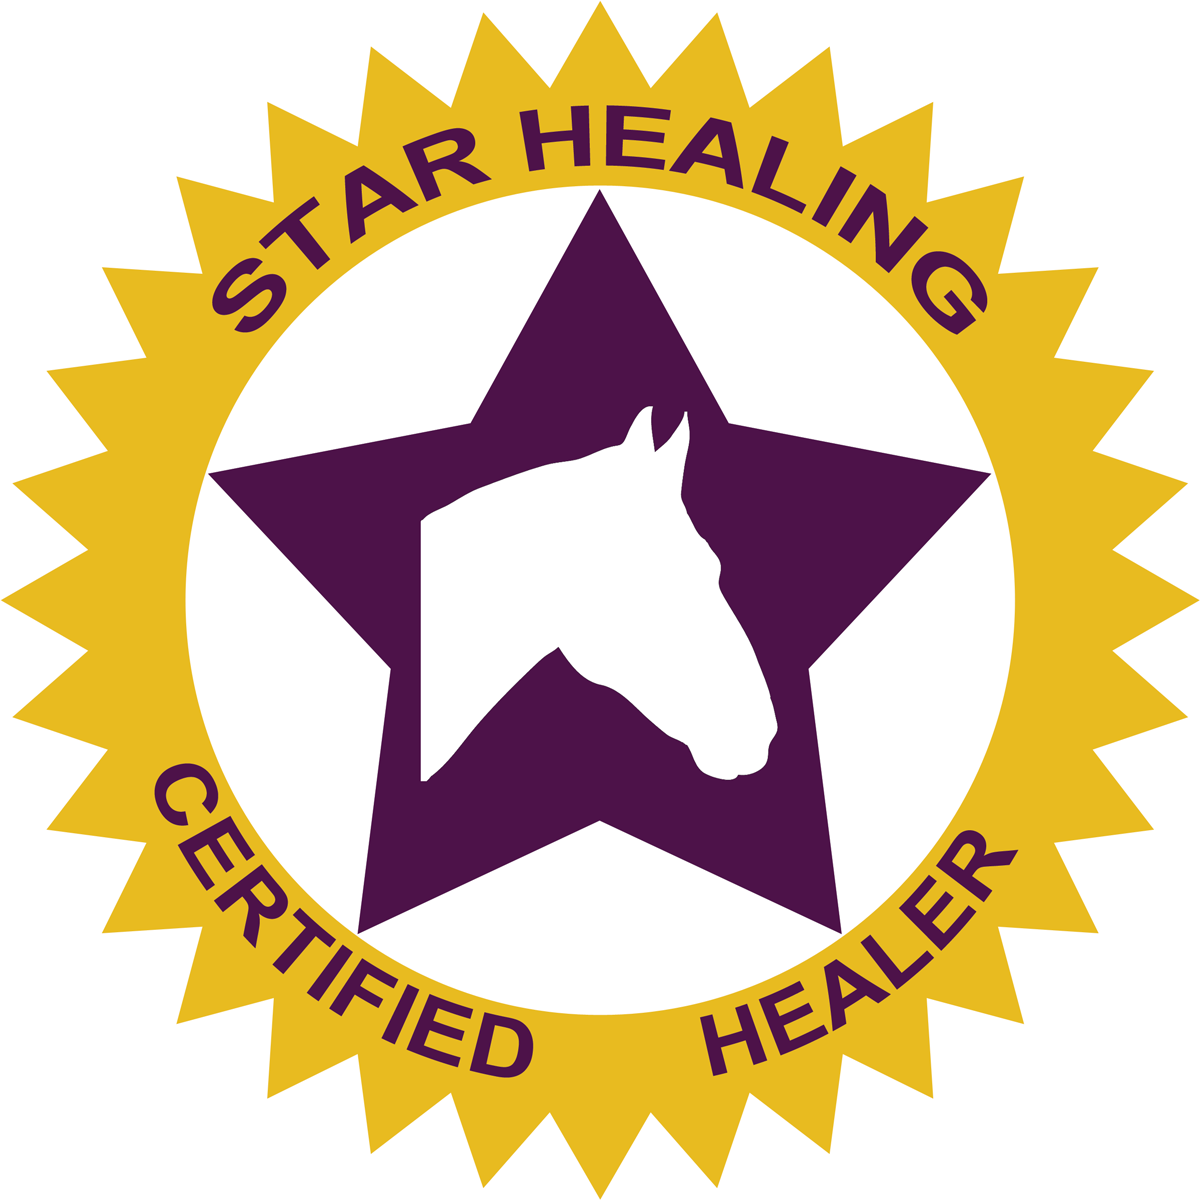 Star Healing Energy Certification - Equine